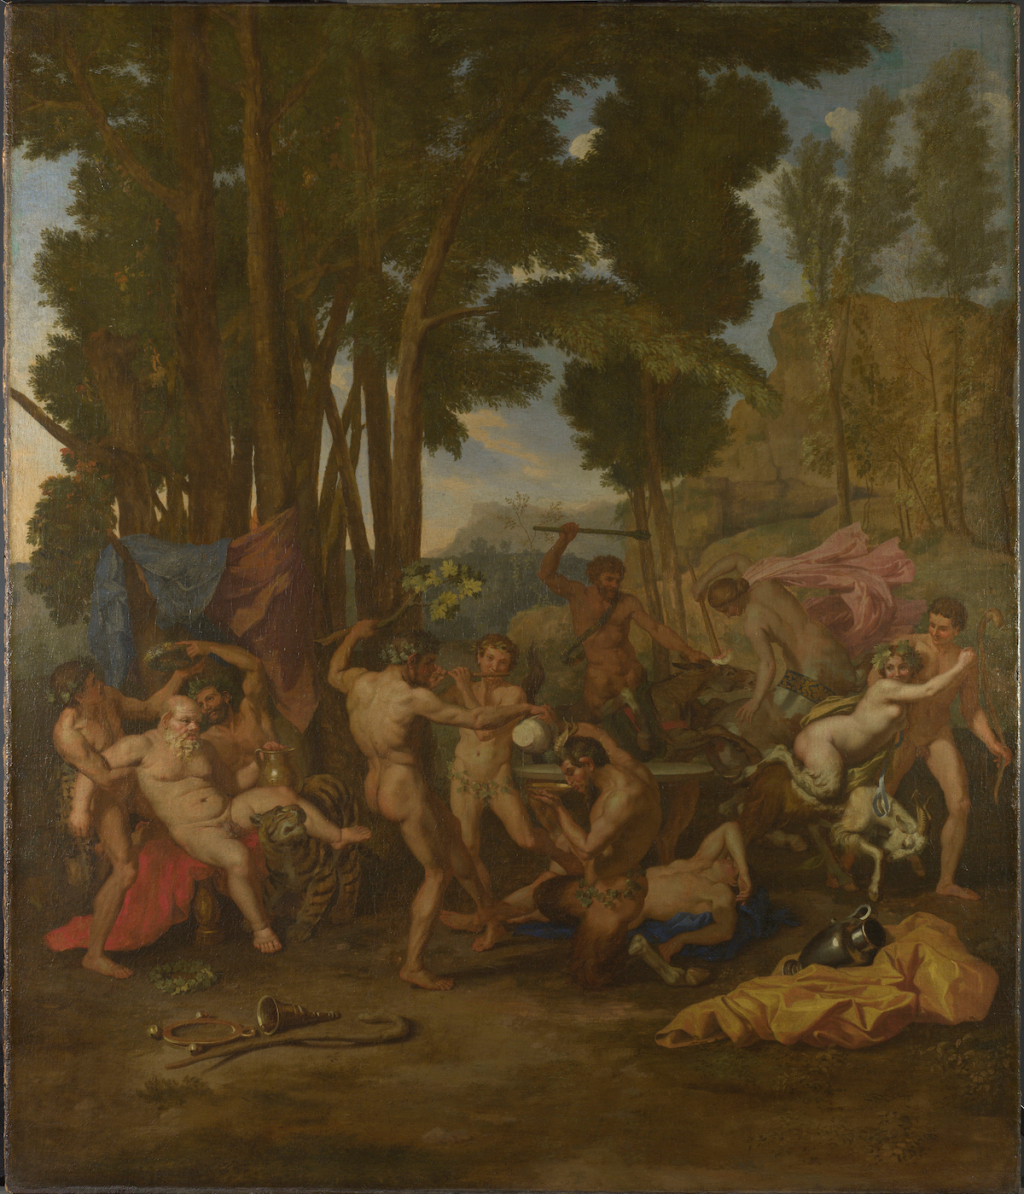 Nicolas Poussin Copy at London's National Gallery Gets Reattributed – ARTnews.com